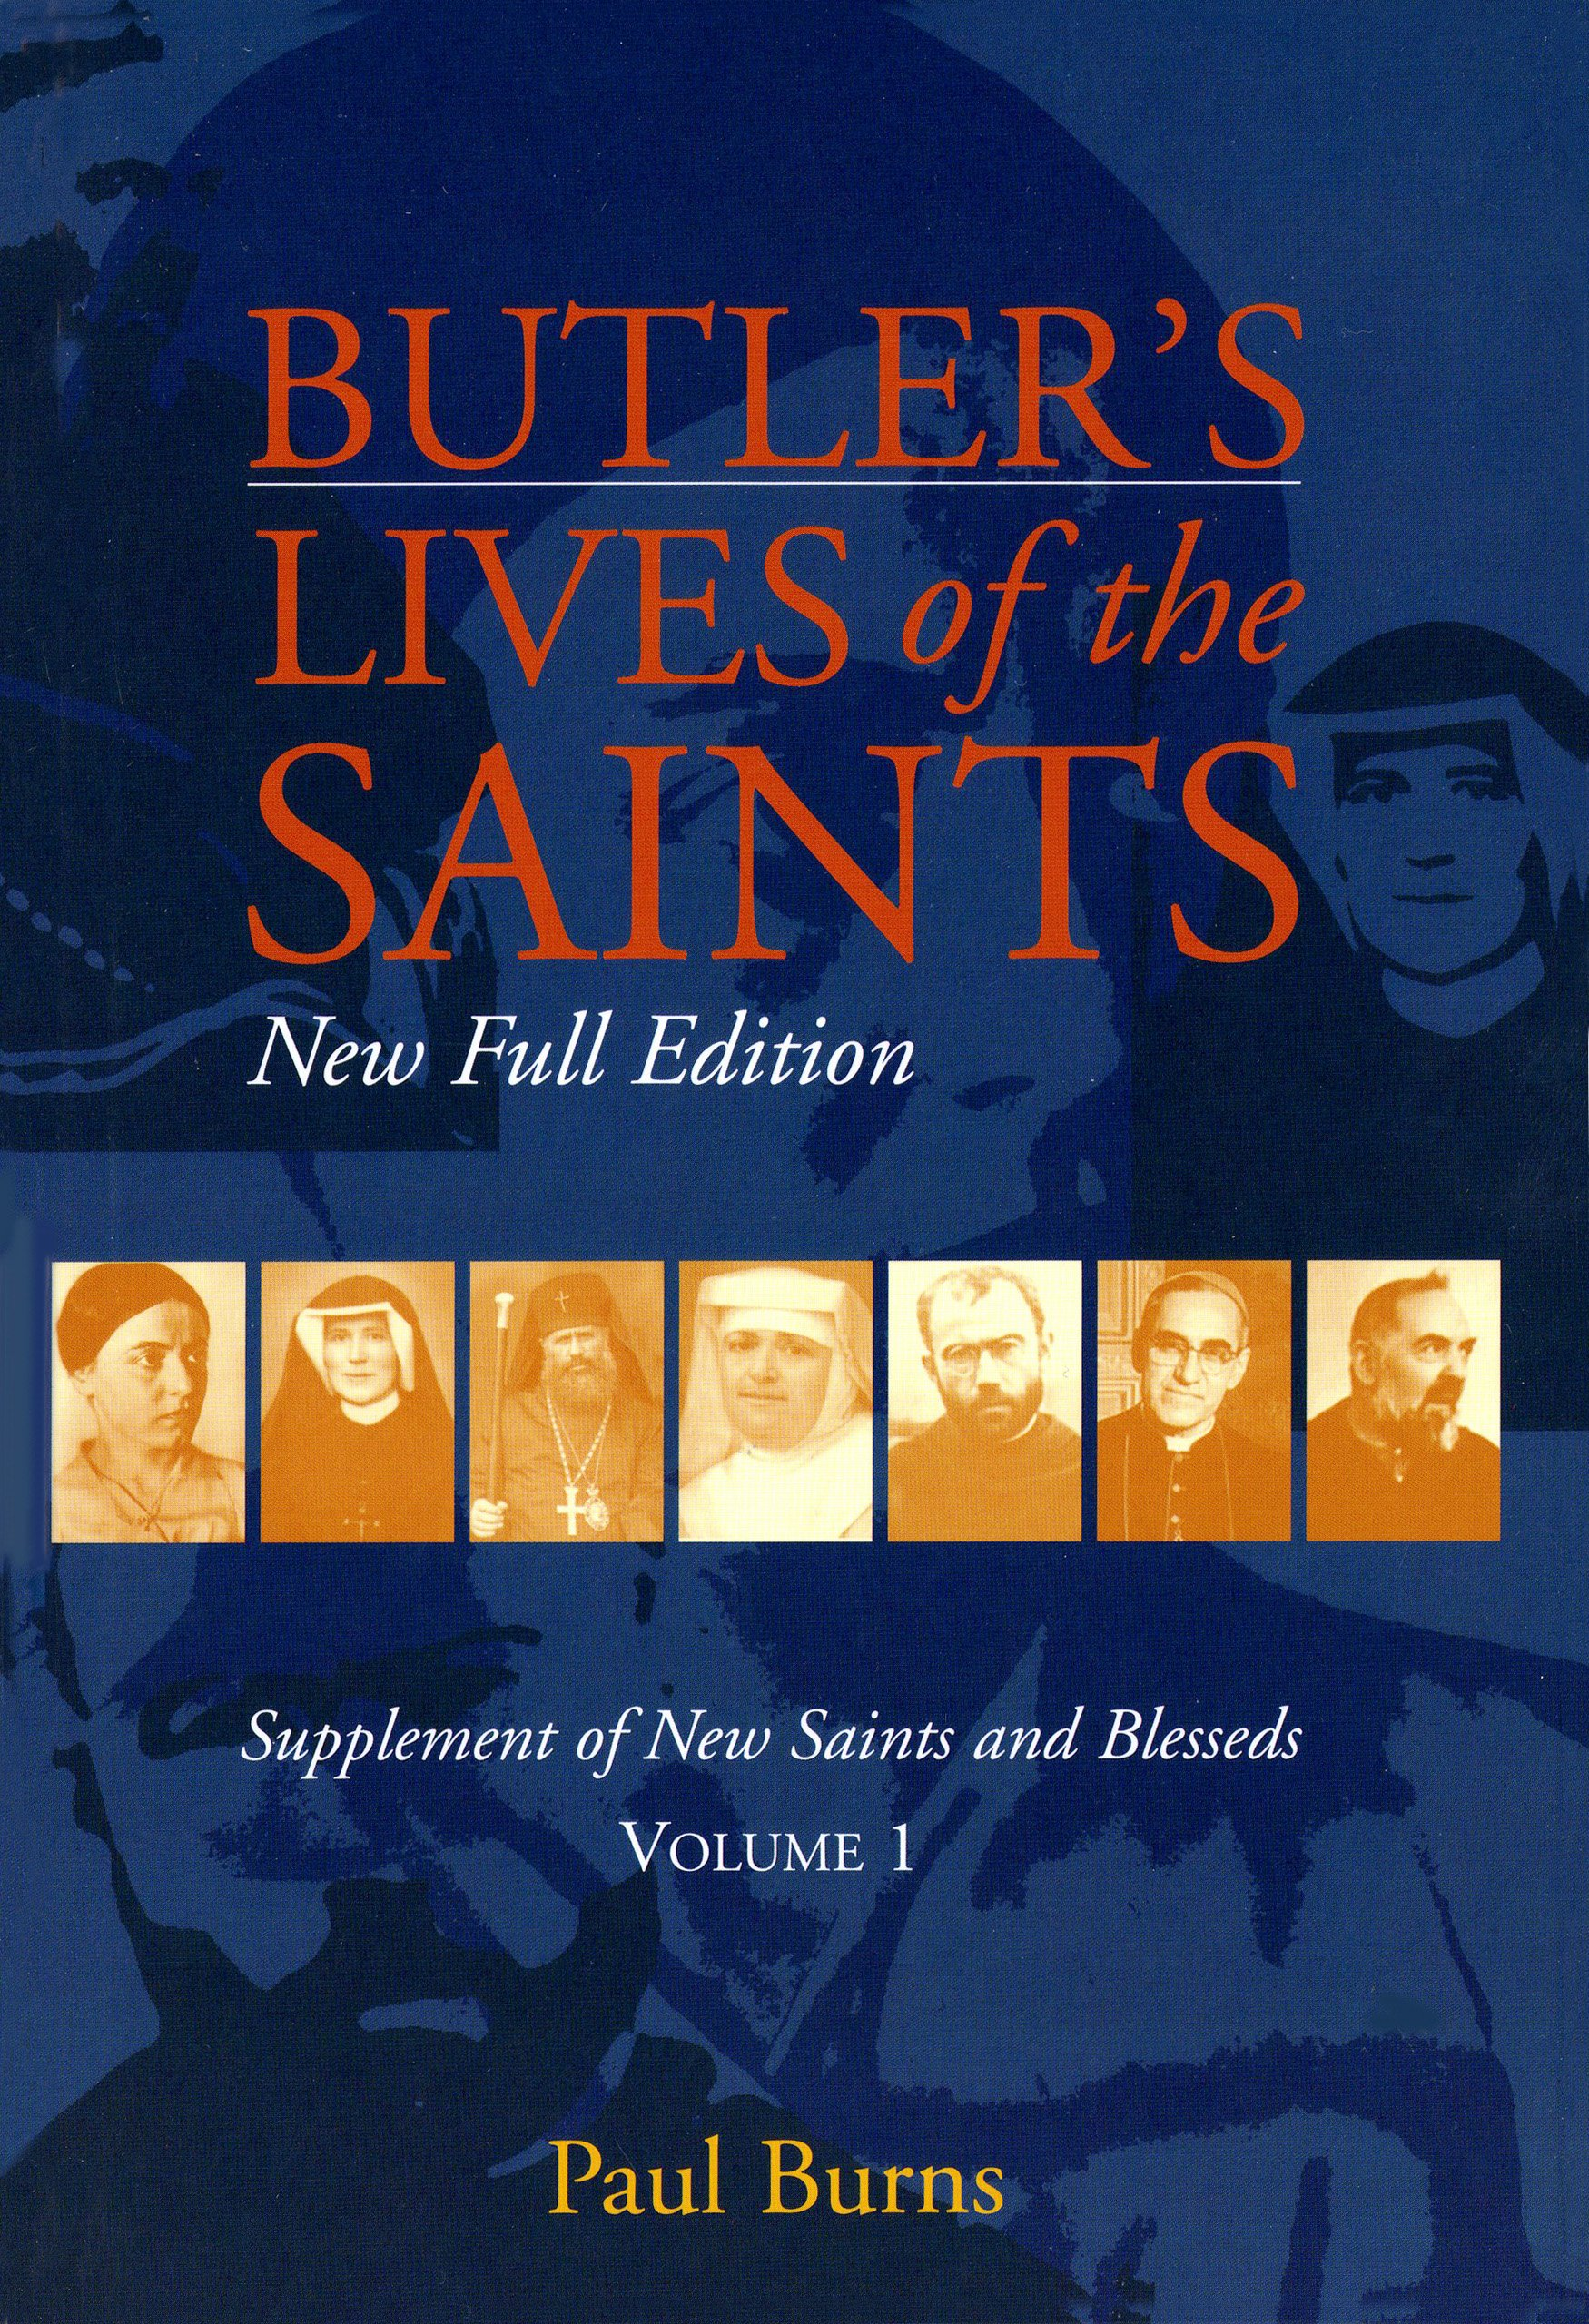 Butler's Lives of the Saints: New Saints And Blesseds, Vol. 1 PDF